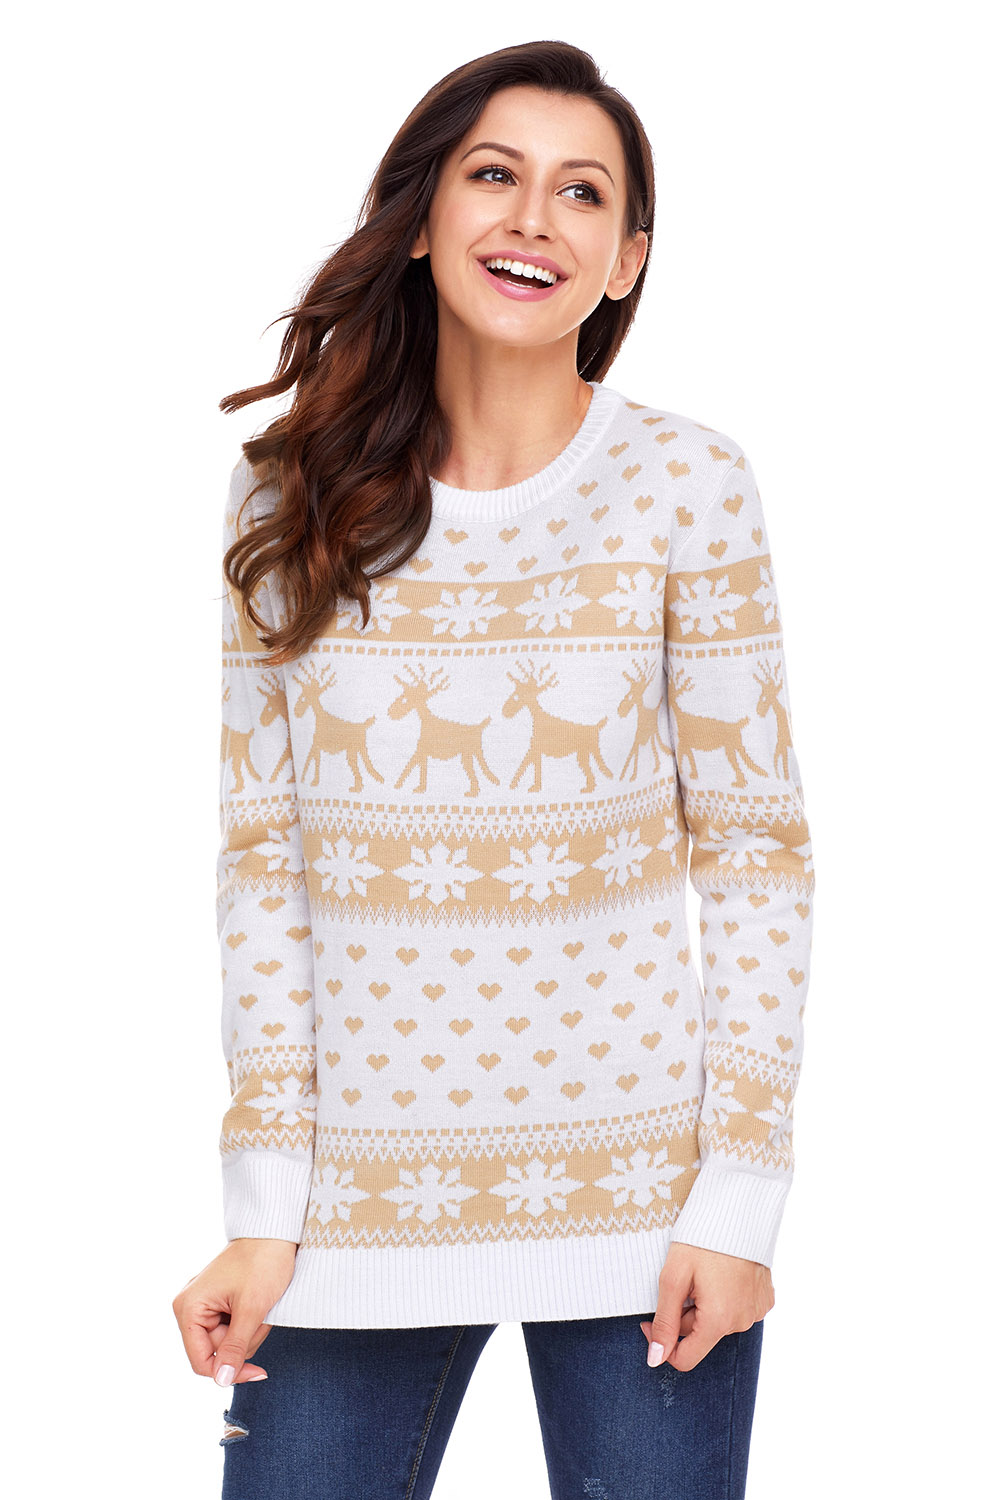 Reindeer and snowflake knit christmas sweater womens autumn winter ...